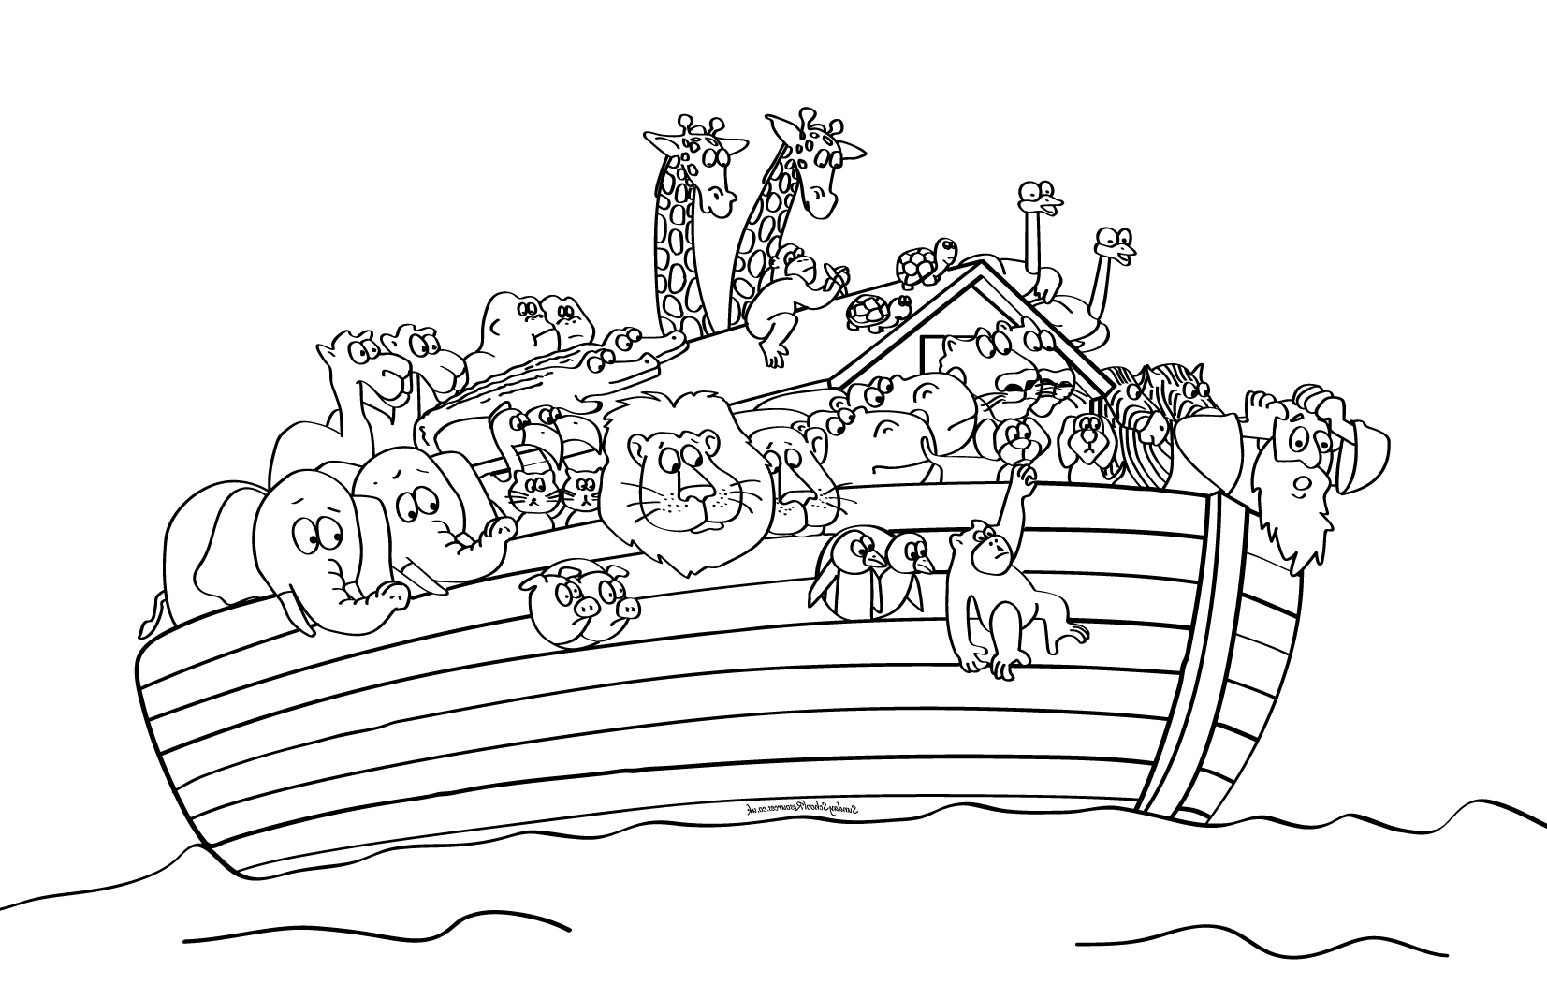 noah's ark coloring page one